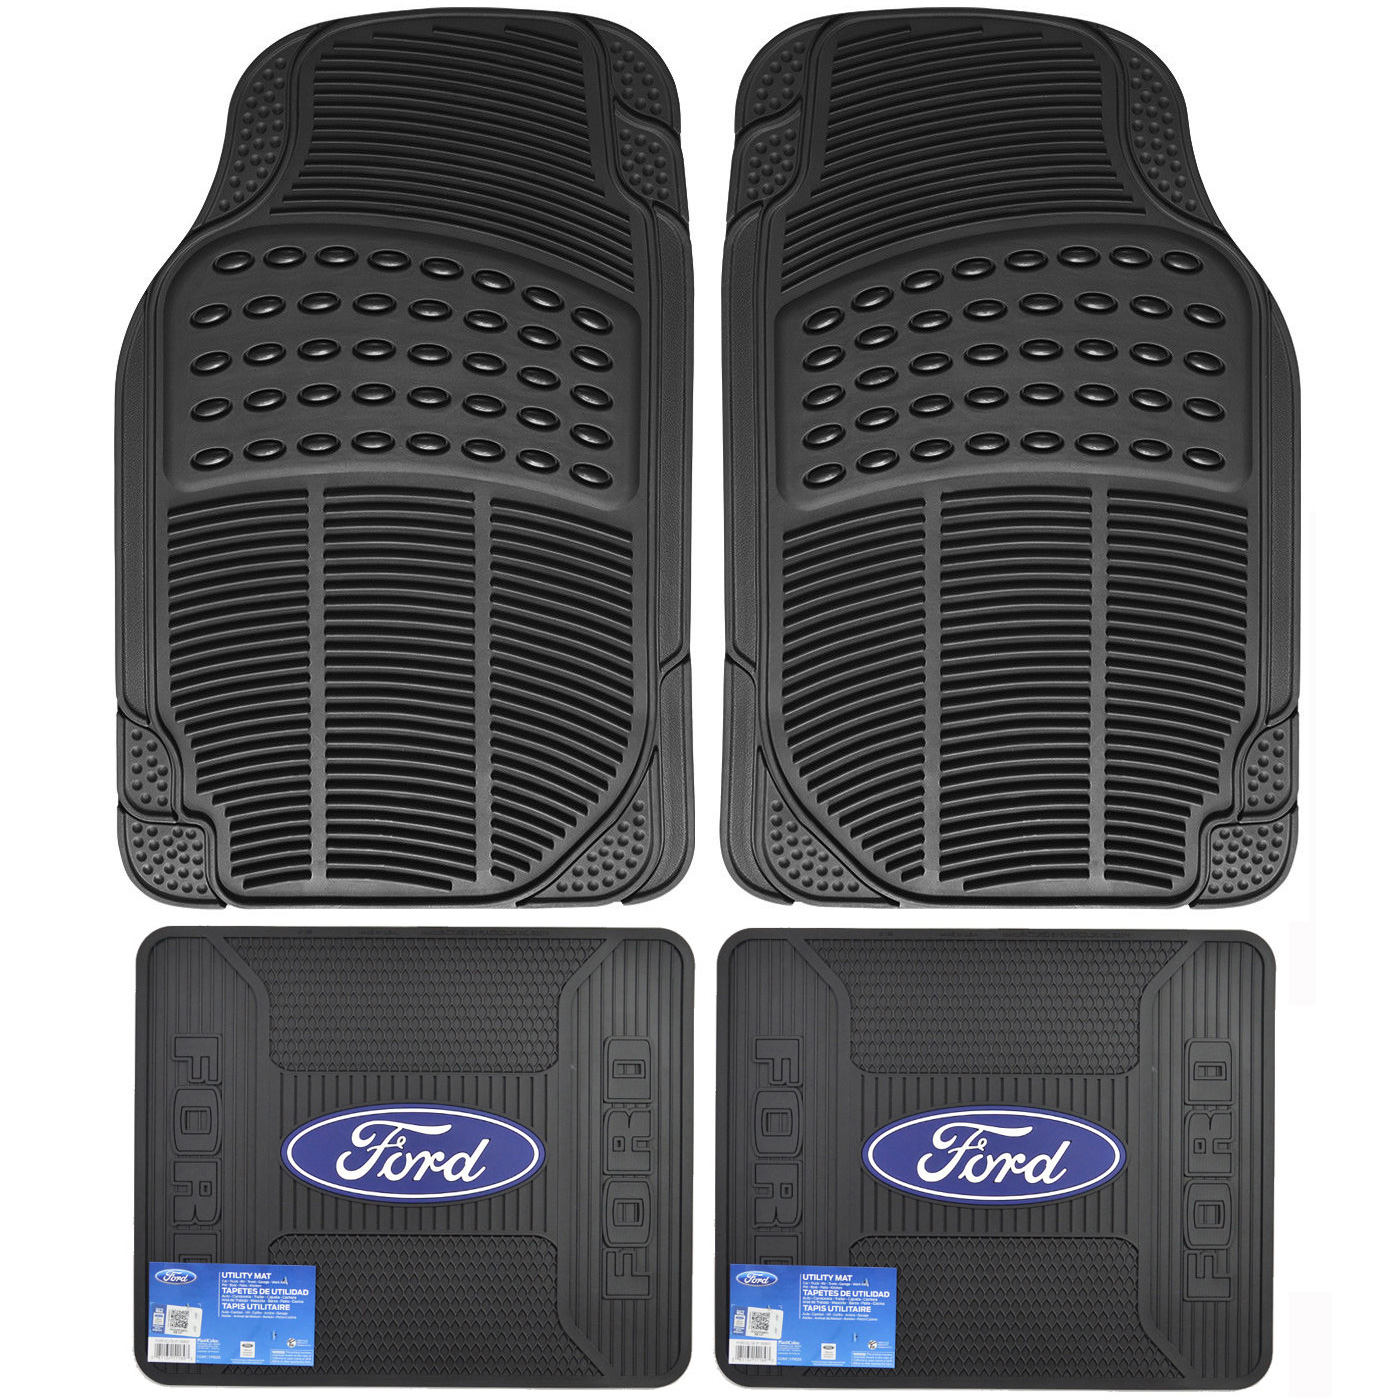 Details about Front Rear Car Truck All Weather Rubber Floor Mats Set FORD  Elite Logo Utility.